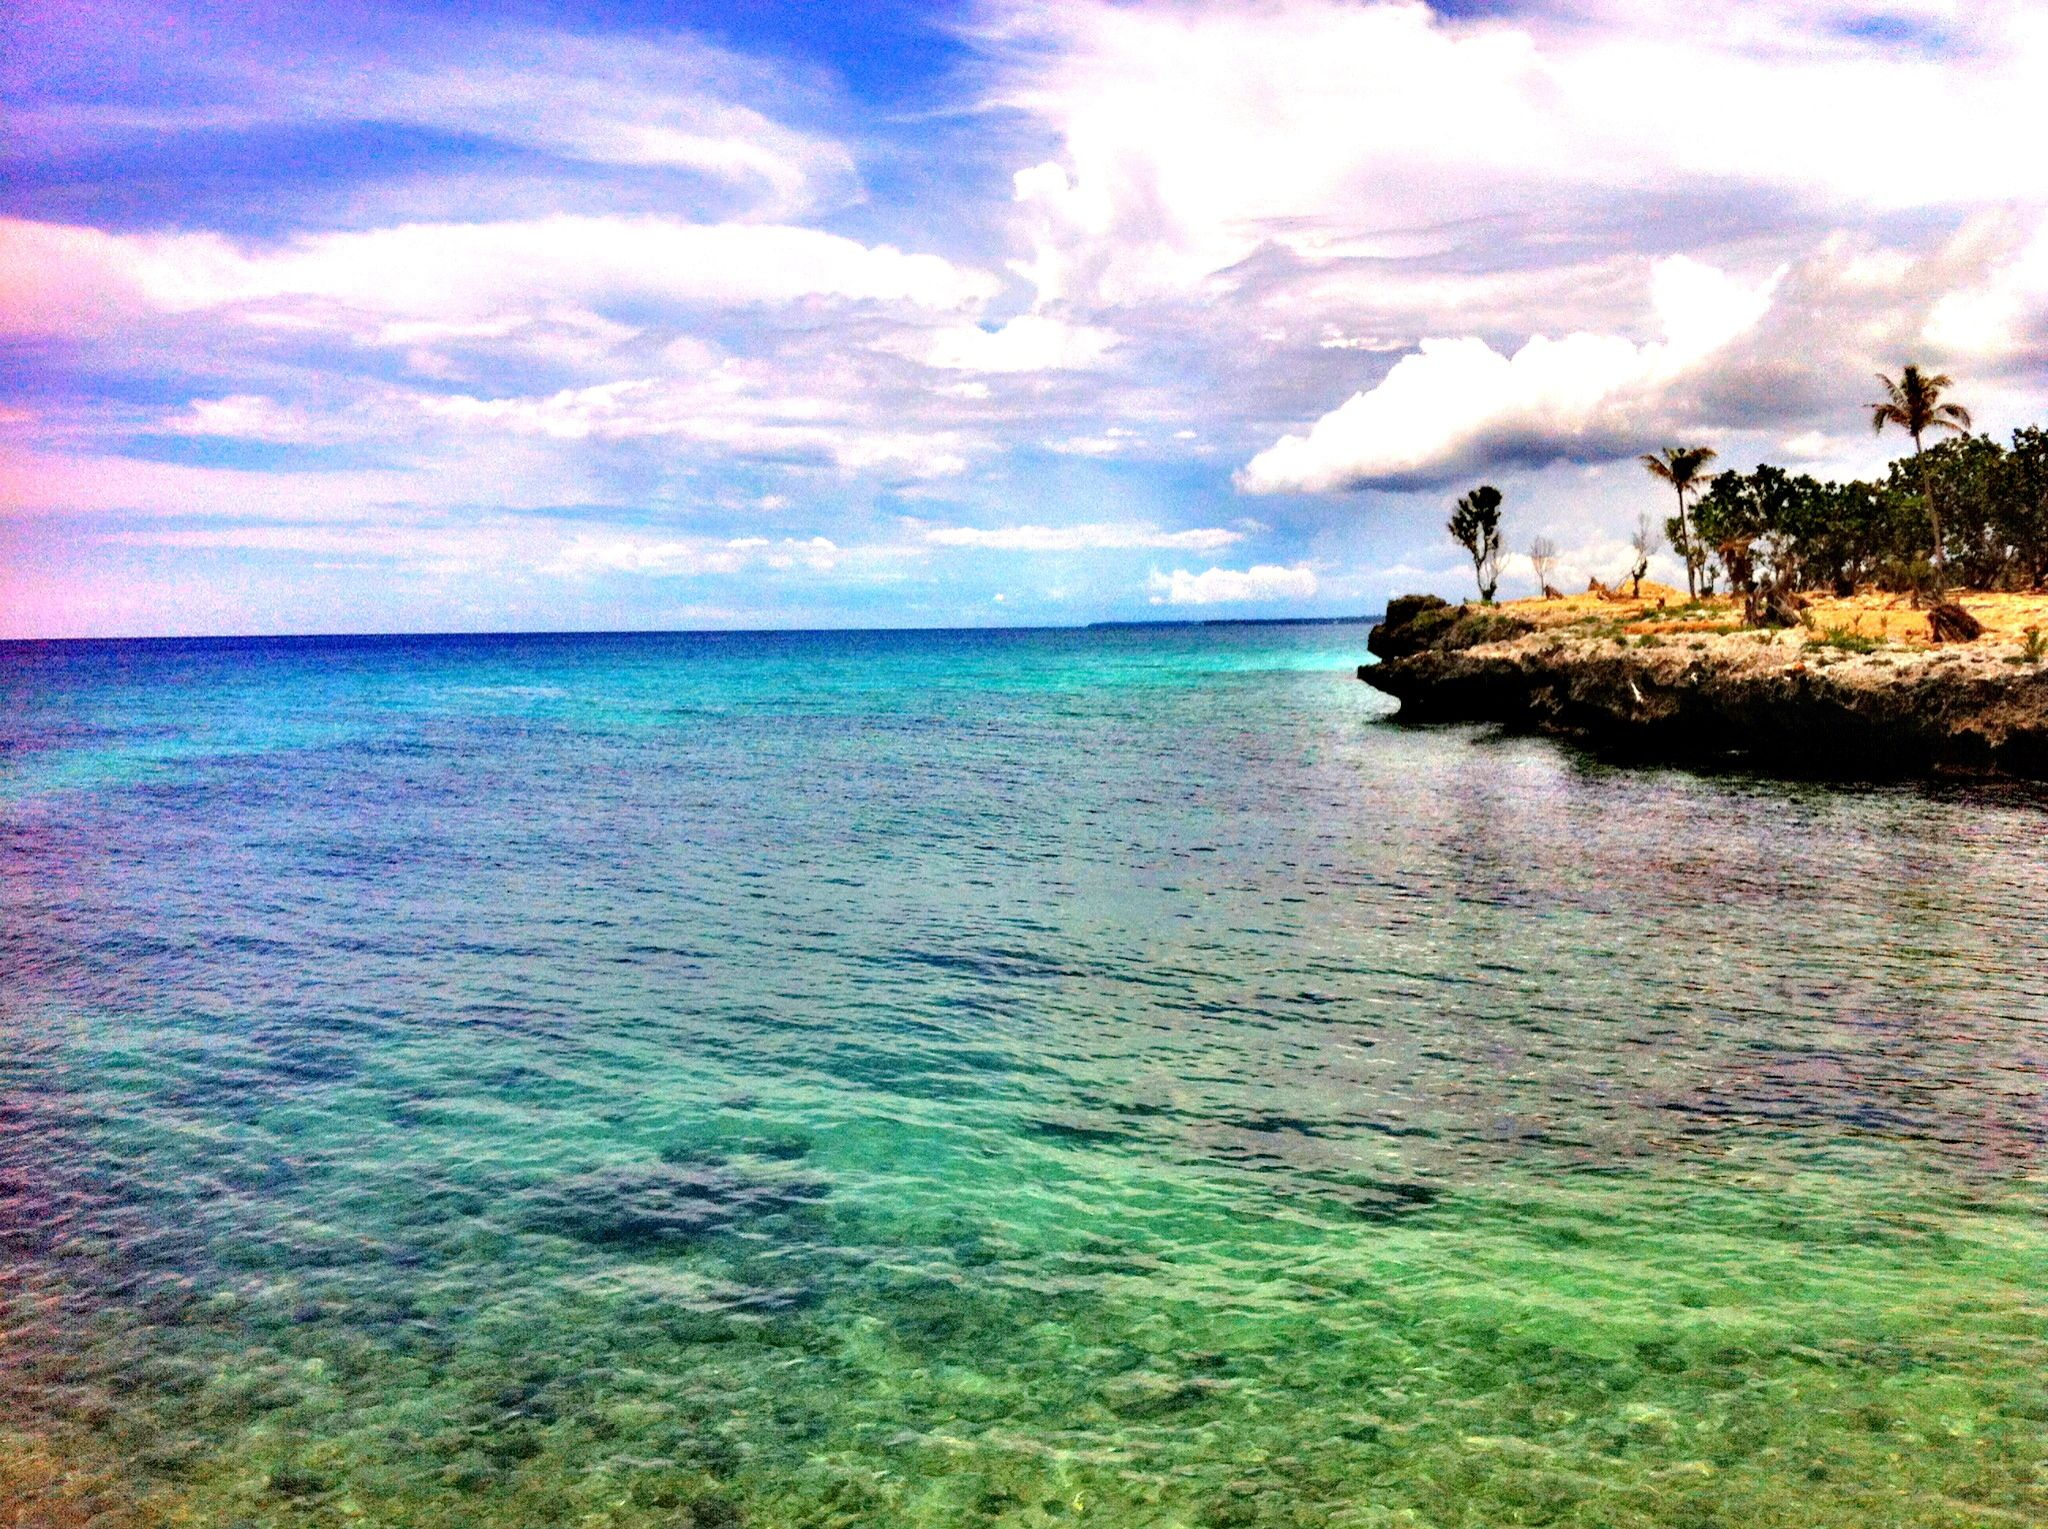 A view from the break water of Camotes Island, Cebu, Philippines